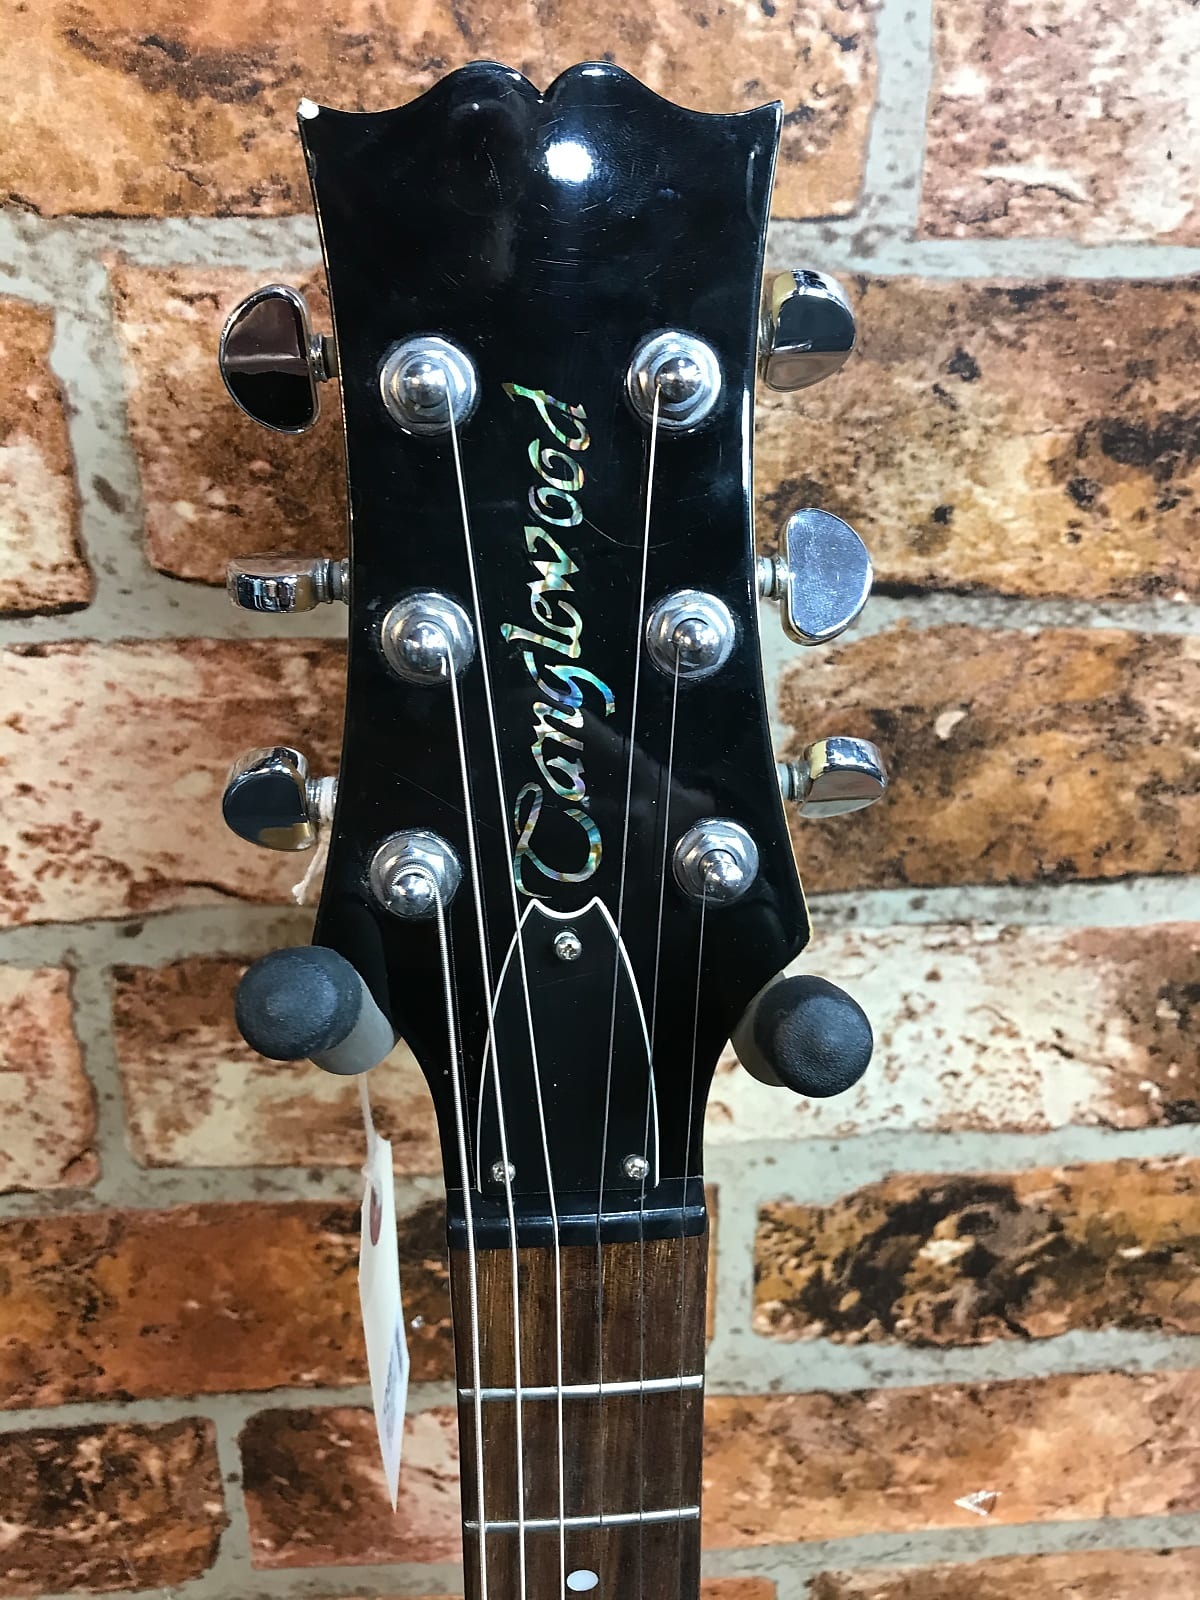 Tanglewood S/H Tanglewood TH502 335 style guitar in Natural